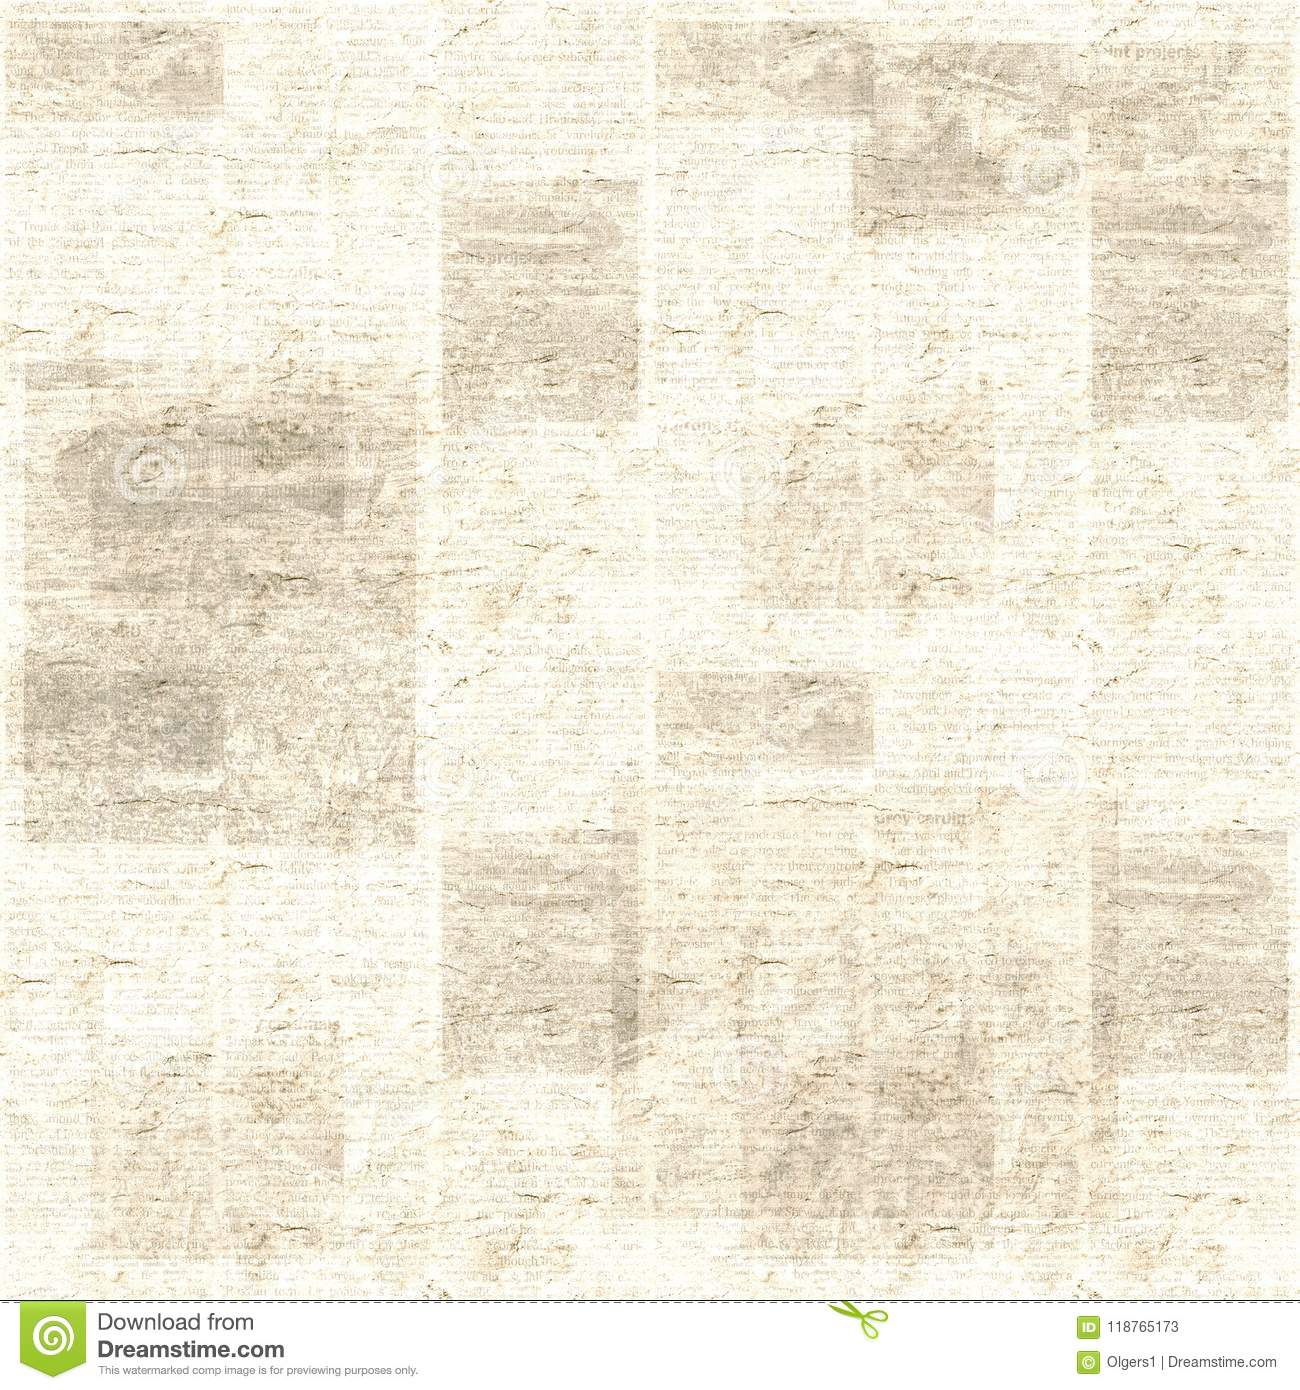 newspaper texture seamless pattern stock image - image of color